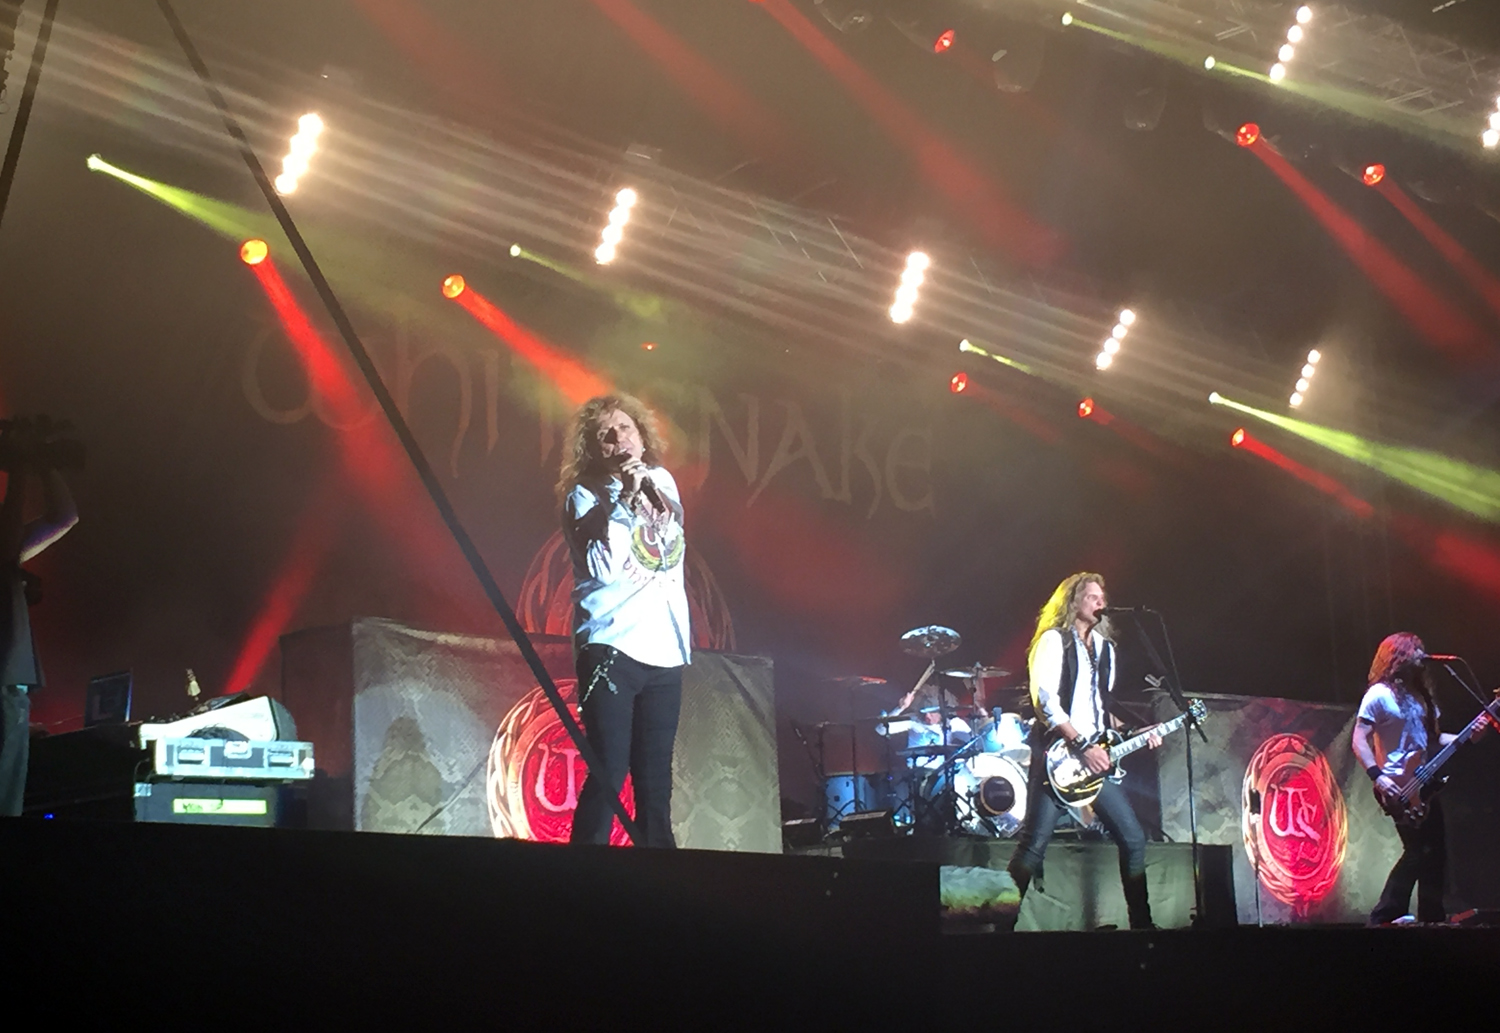 Saturday's headliner Whitesnake at Ramblin' Man Fair